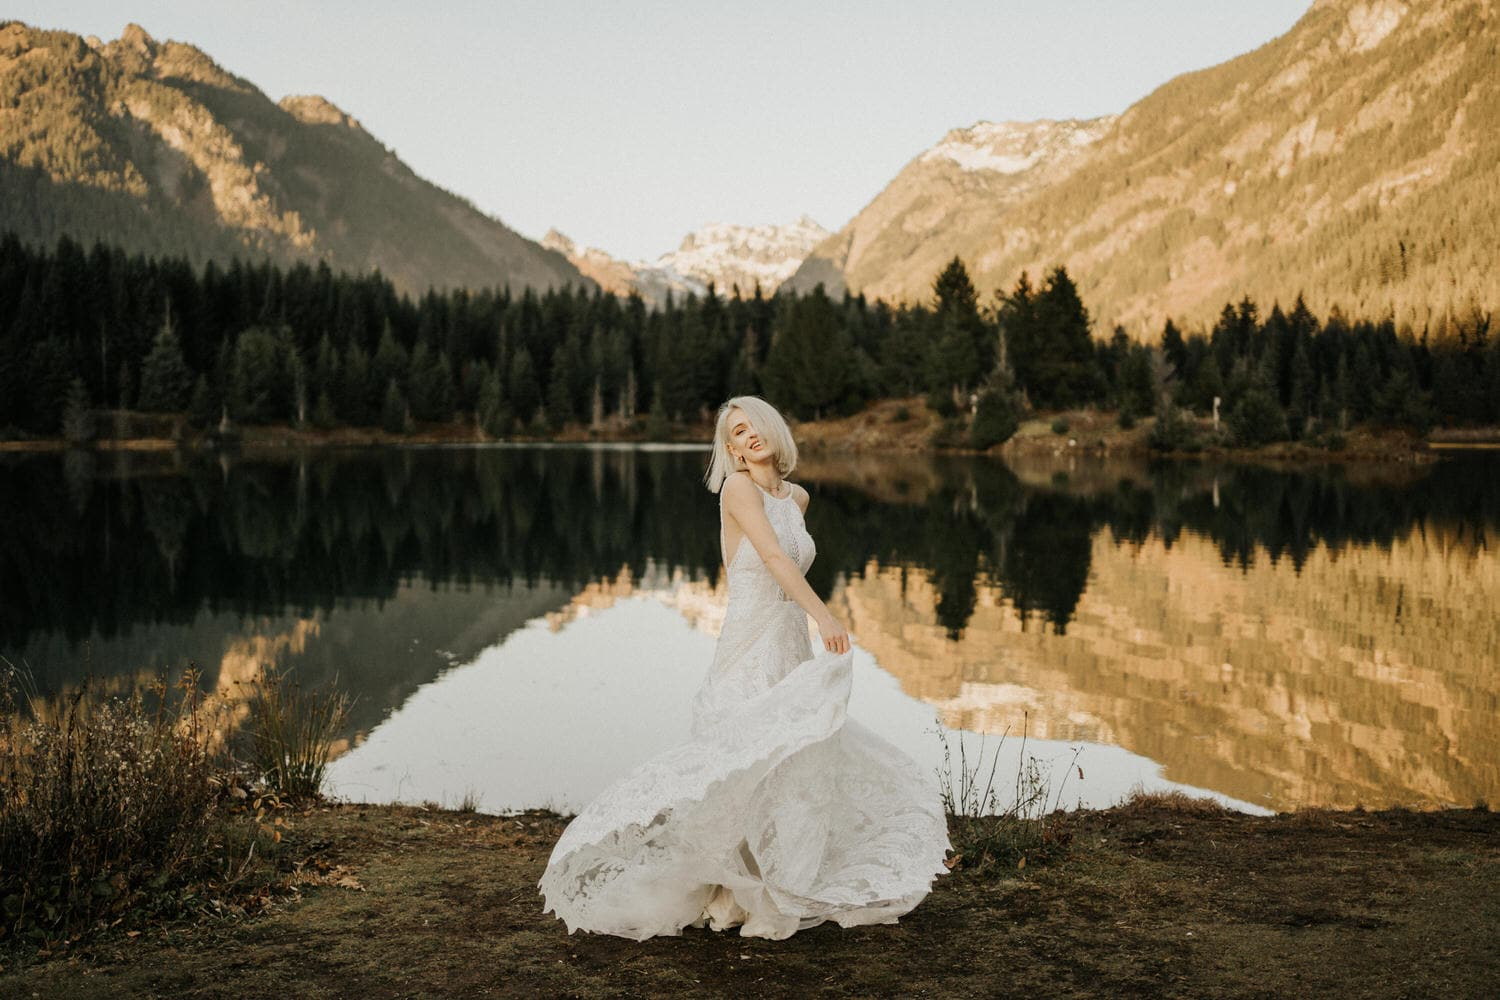 bridal portraits at gold creek pond snoqualmie pass area